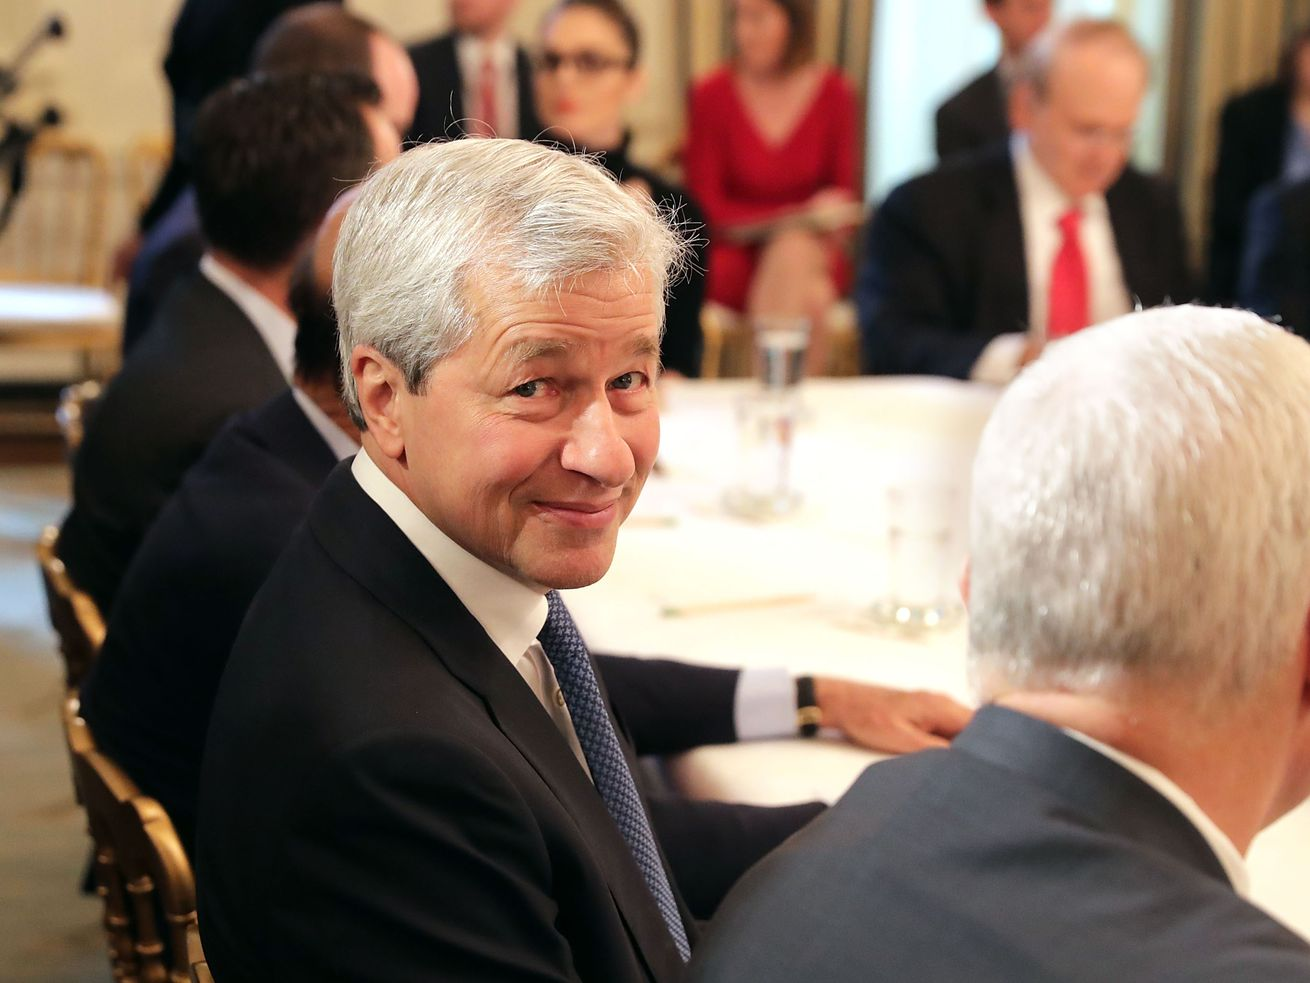 JPMorgan Chase CEO Jamie Dimon at a policy forum with President Donald Trump at the White House in February 2017.